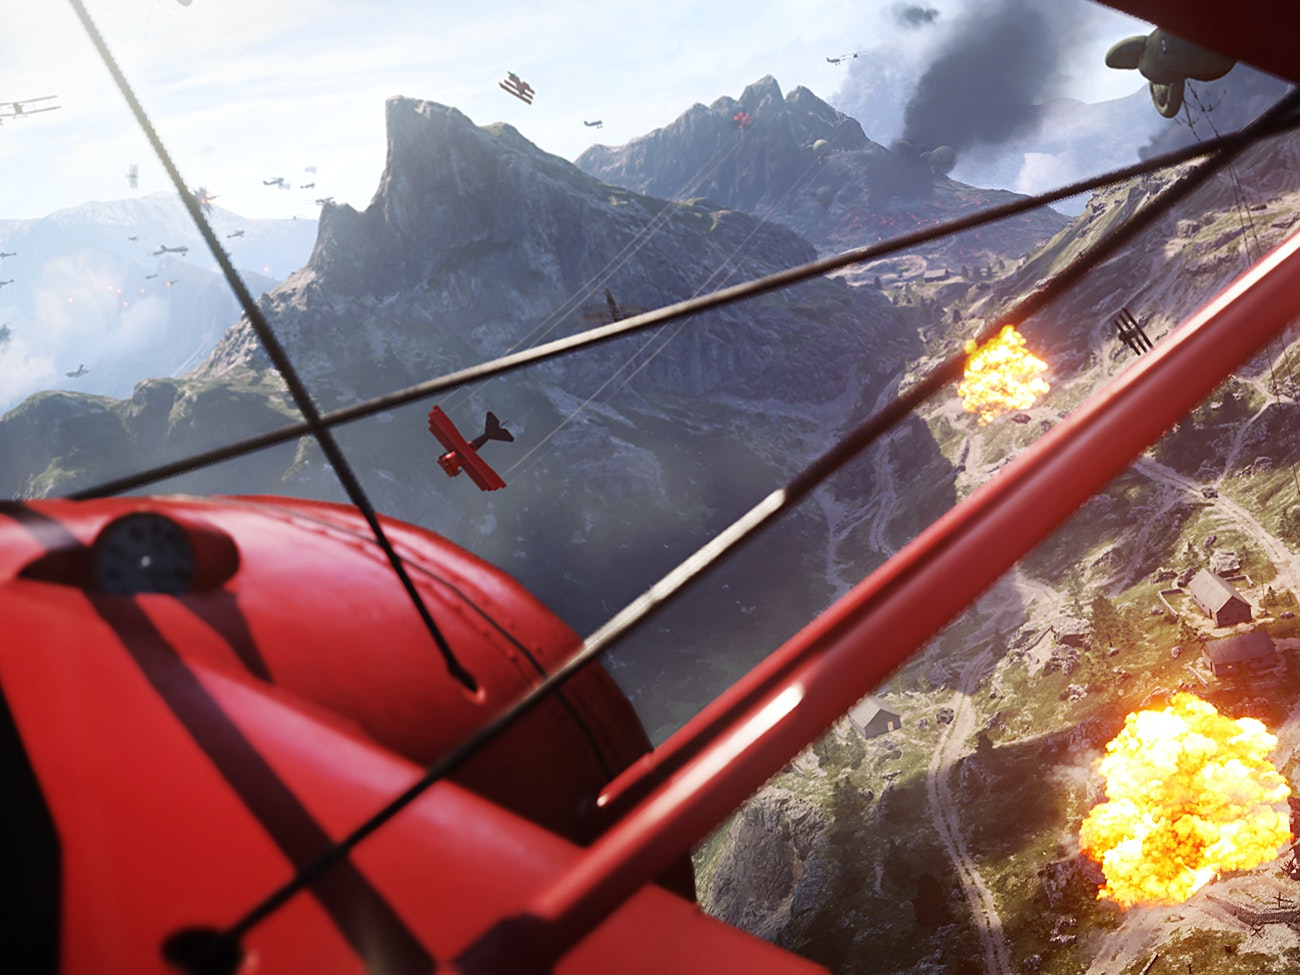 The 'Battlefield 1' Open Beta Shows the Game is Off to a Promising Start